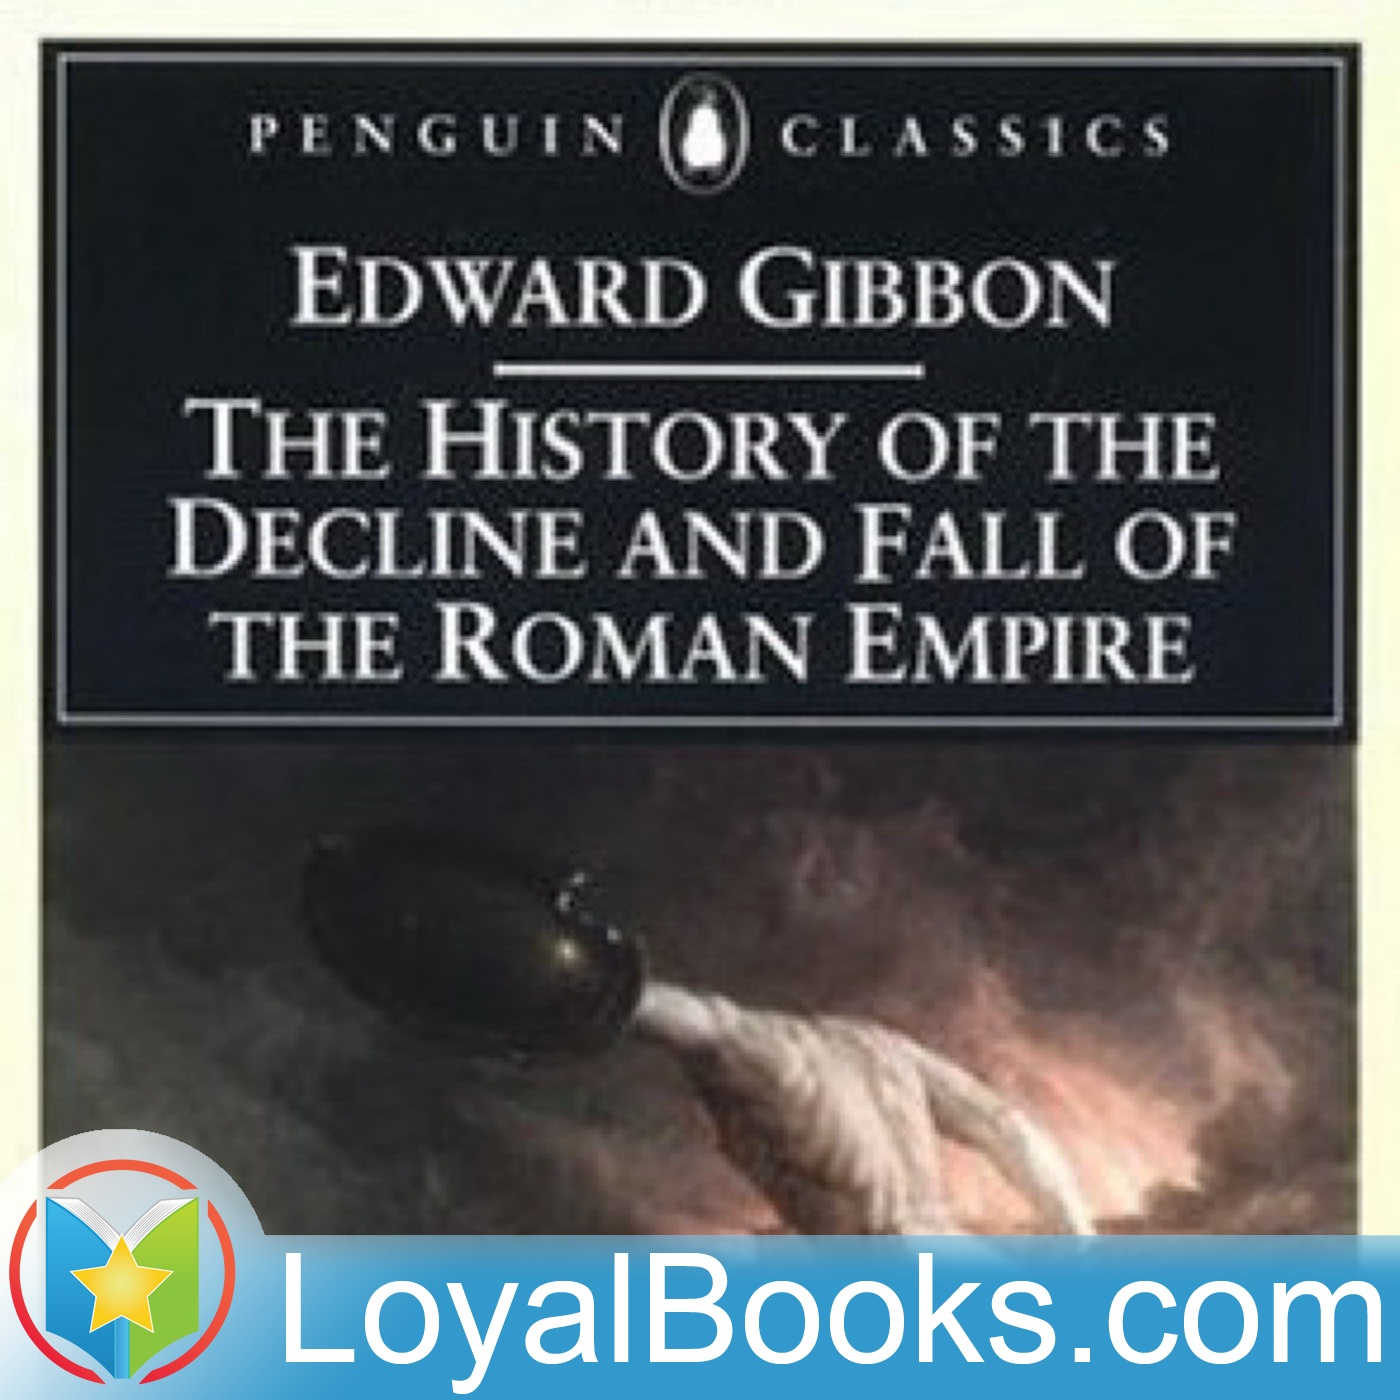 <![CDATA[History of the Decline and Fall of the Roman Empire by Edward Gibbon]]>